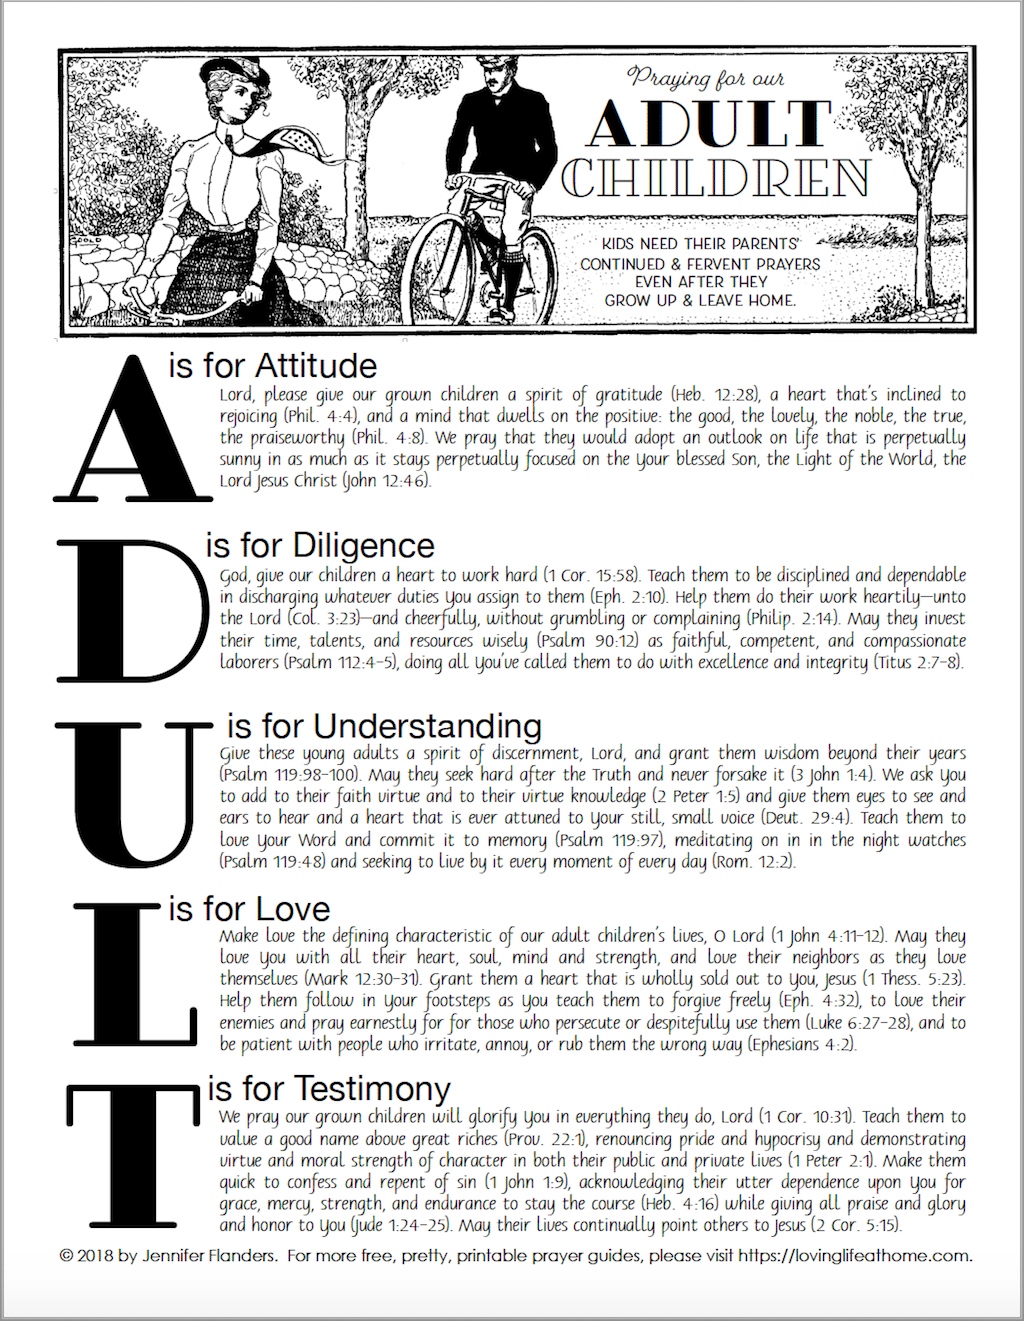 Praying for Adult Children - free printable